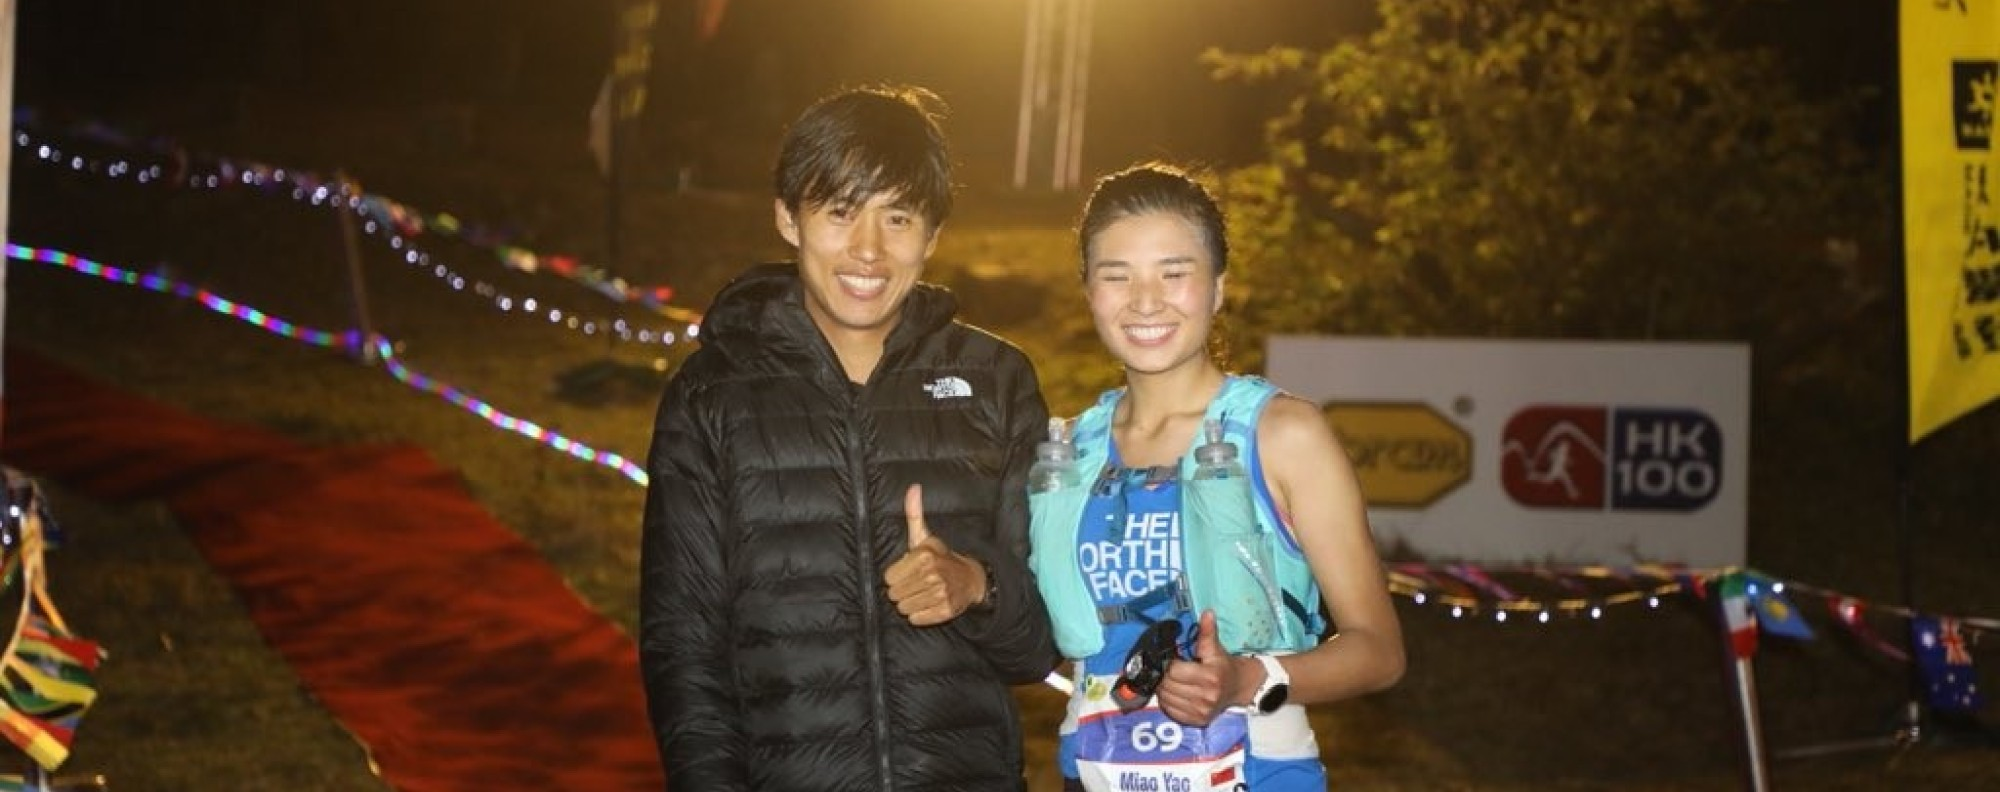 Qi Min and Yao Miao at the finish line of the HK100. Photo: Twitter/@iRunFar